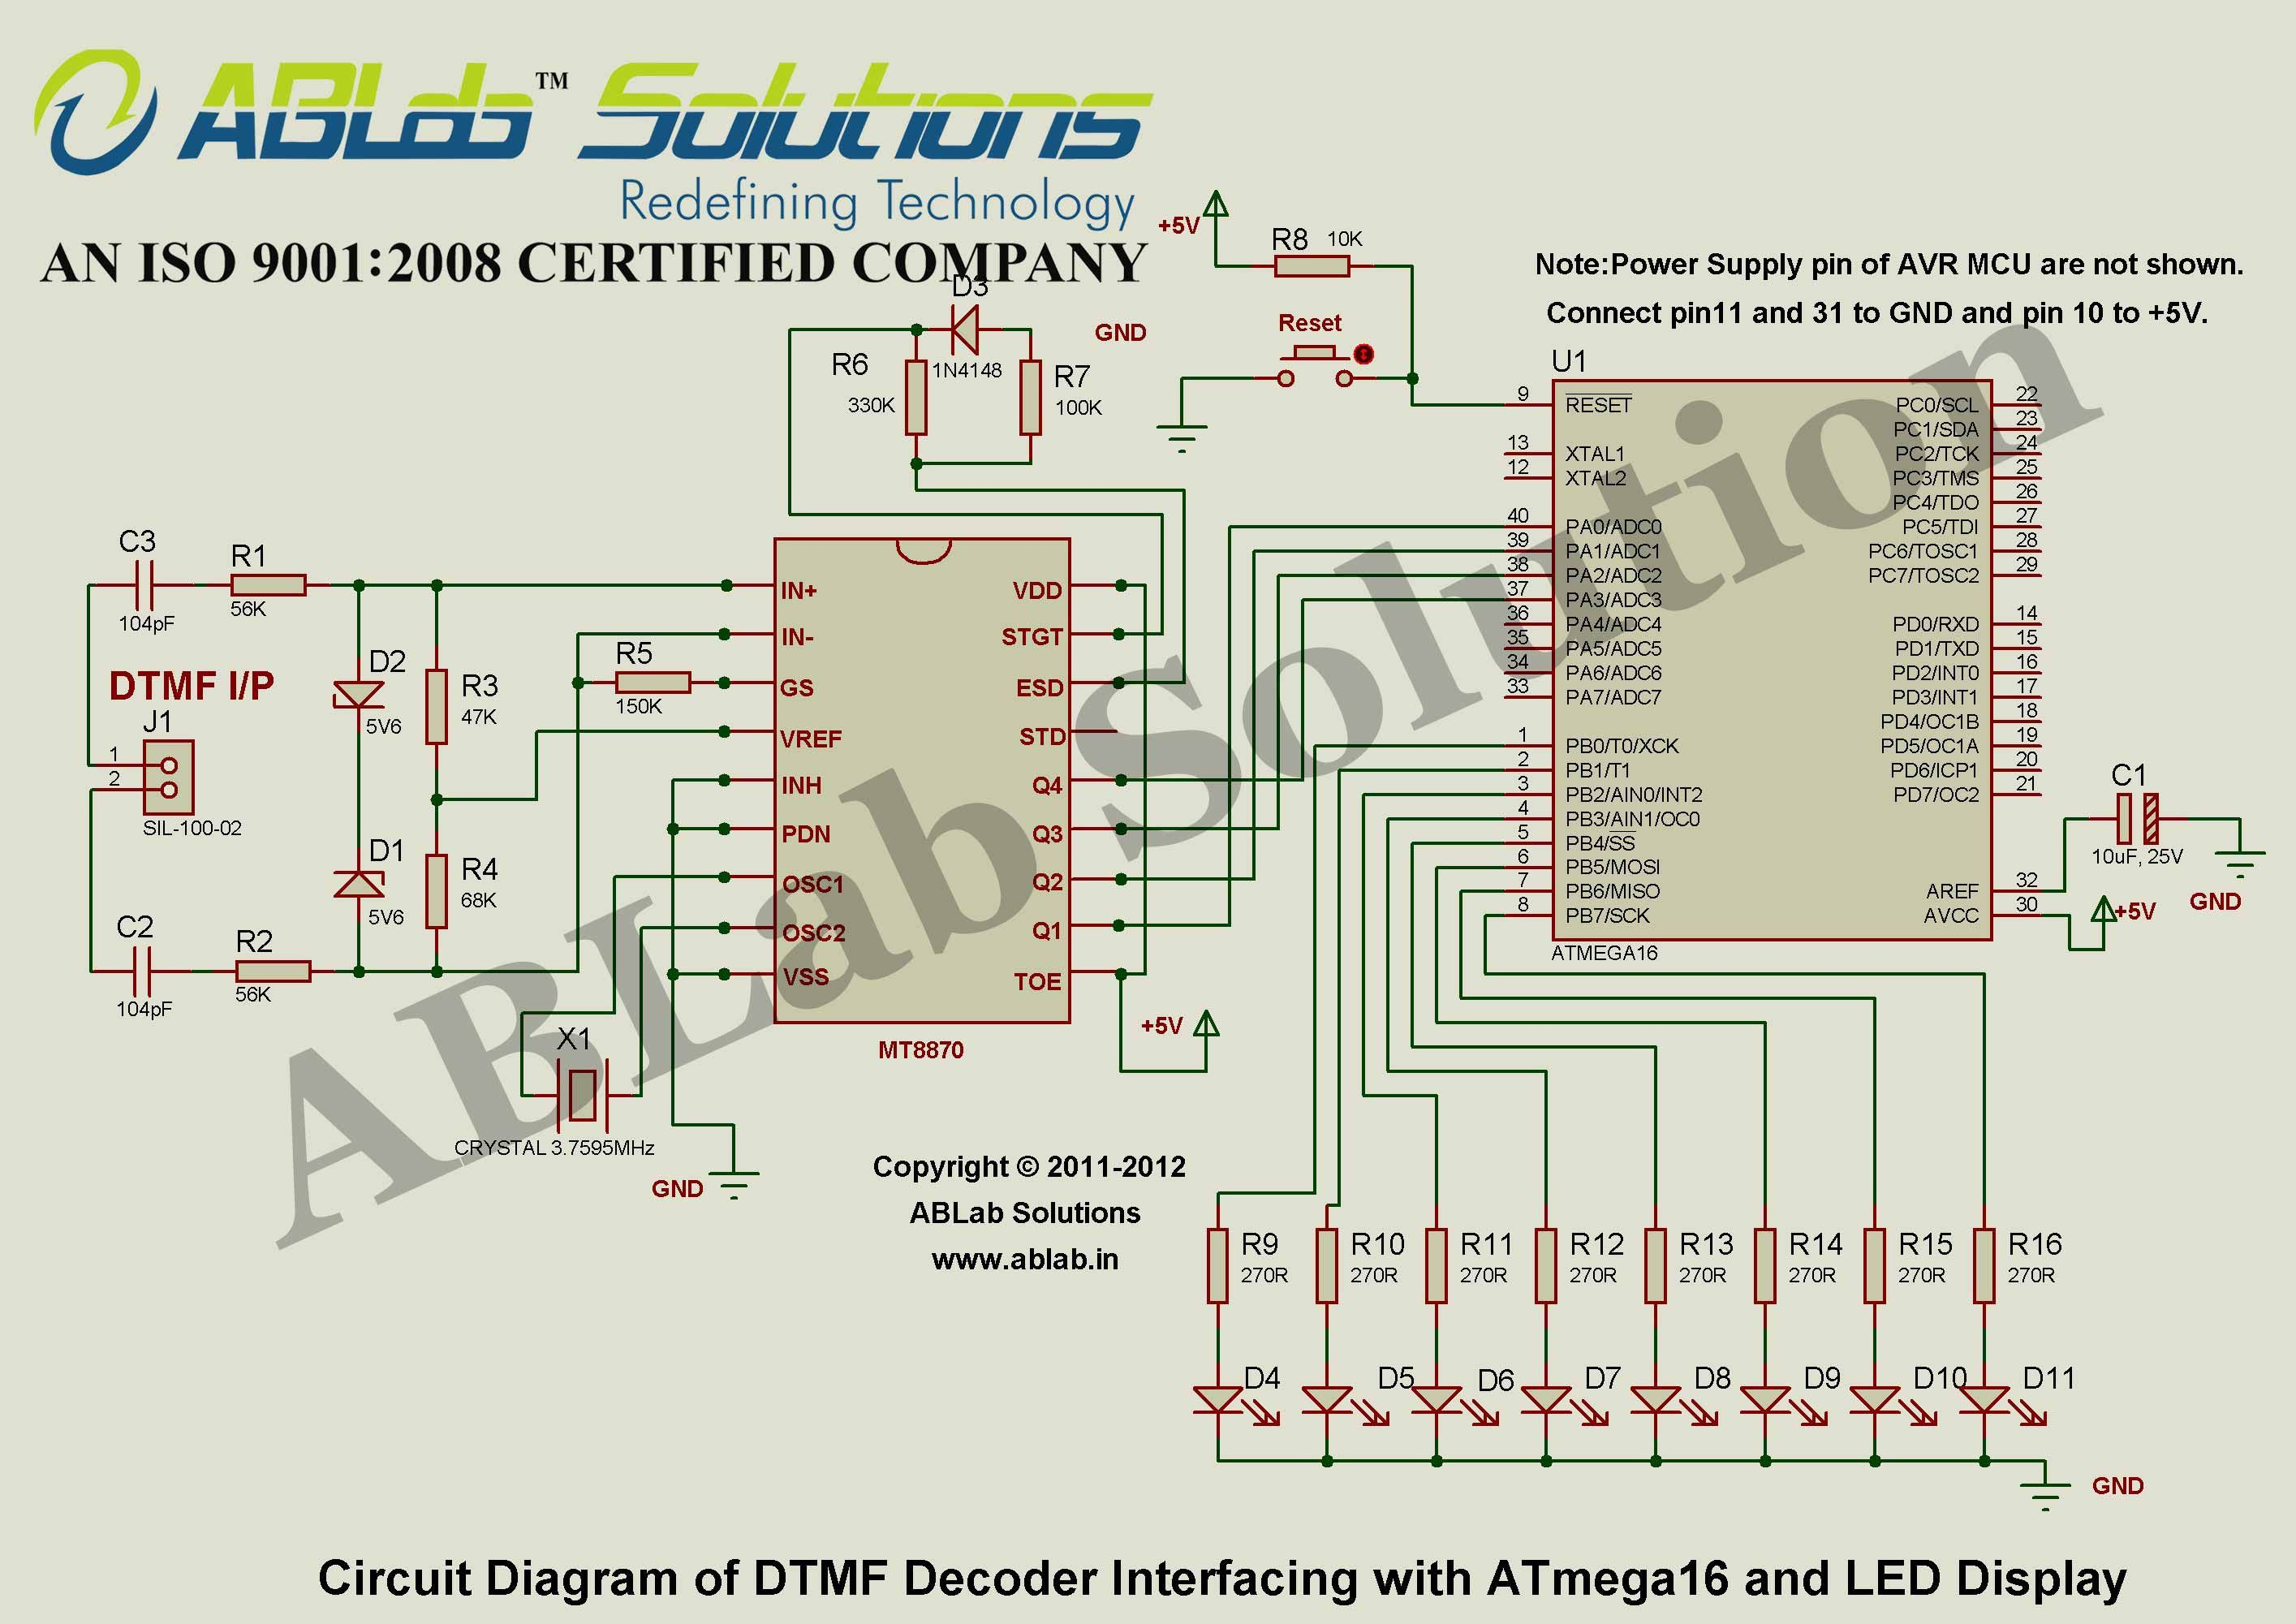 Dtmf Decoder Interfacing With Avr Atmega16 Microcontroller And Led Based Load Control System Circuit Diagram